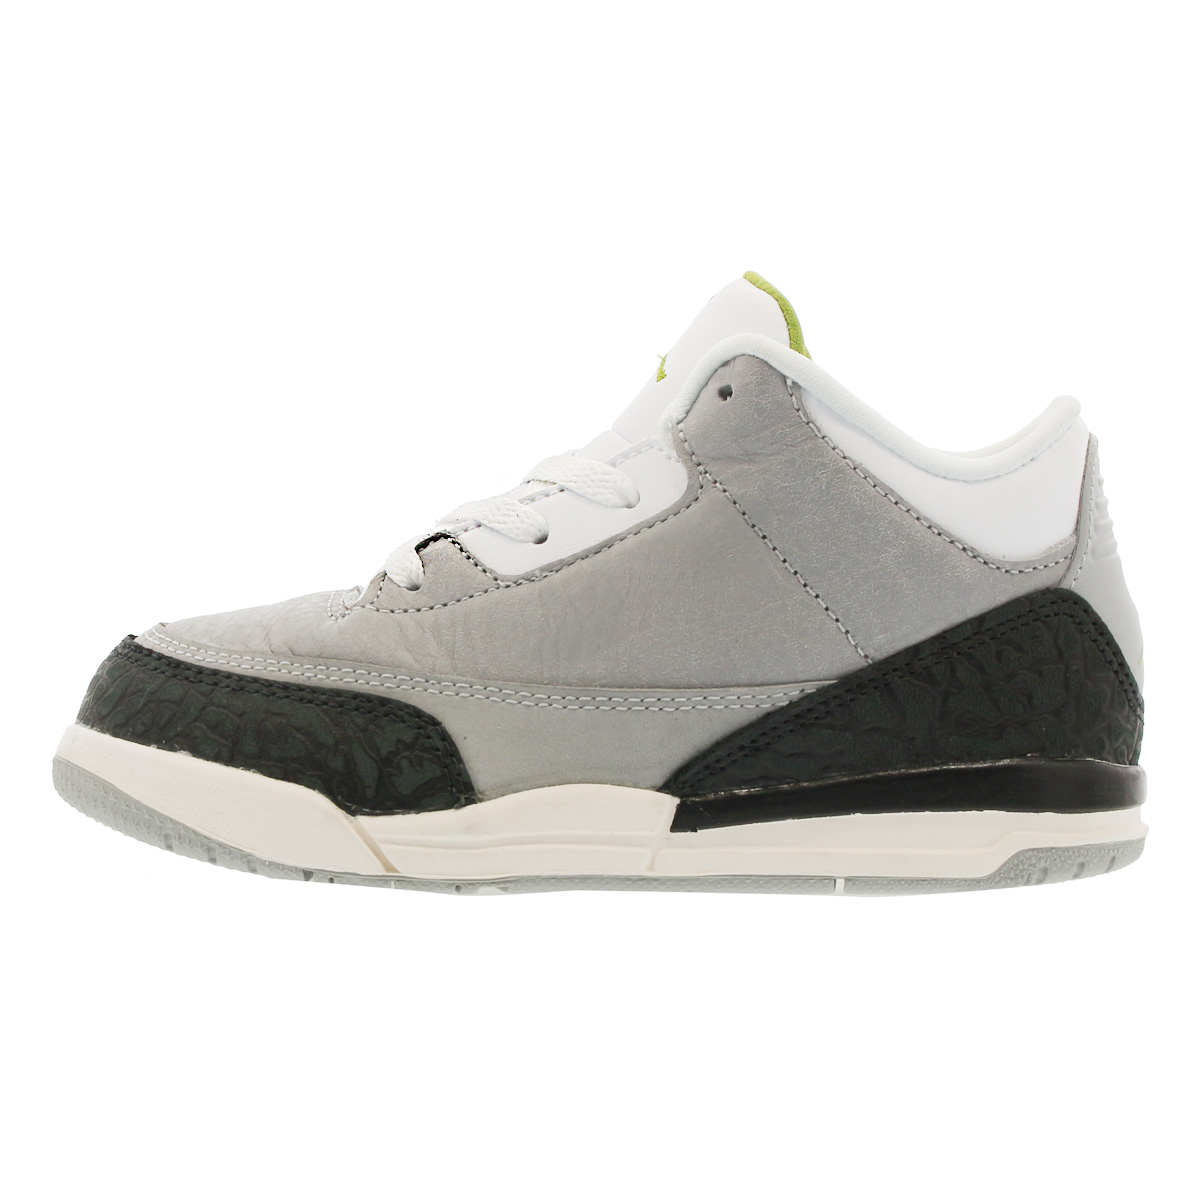 9e81a83b5ef ... NIKE AIR JORDAN 3 RETRO BT Nike Air Jordan 3 nostalgic BT LIGHT SMOKE  GREY/ ...